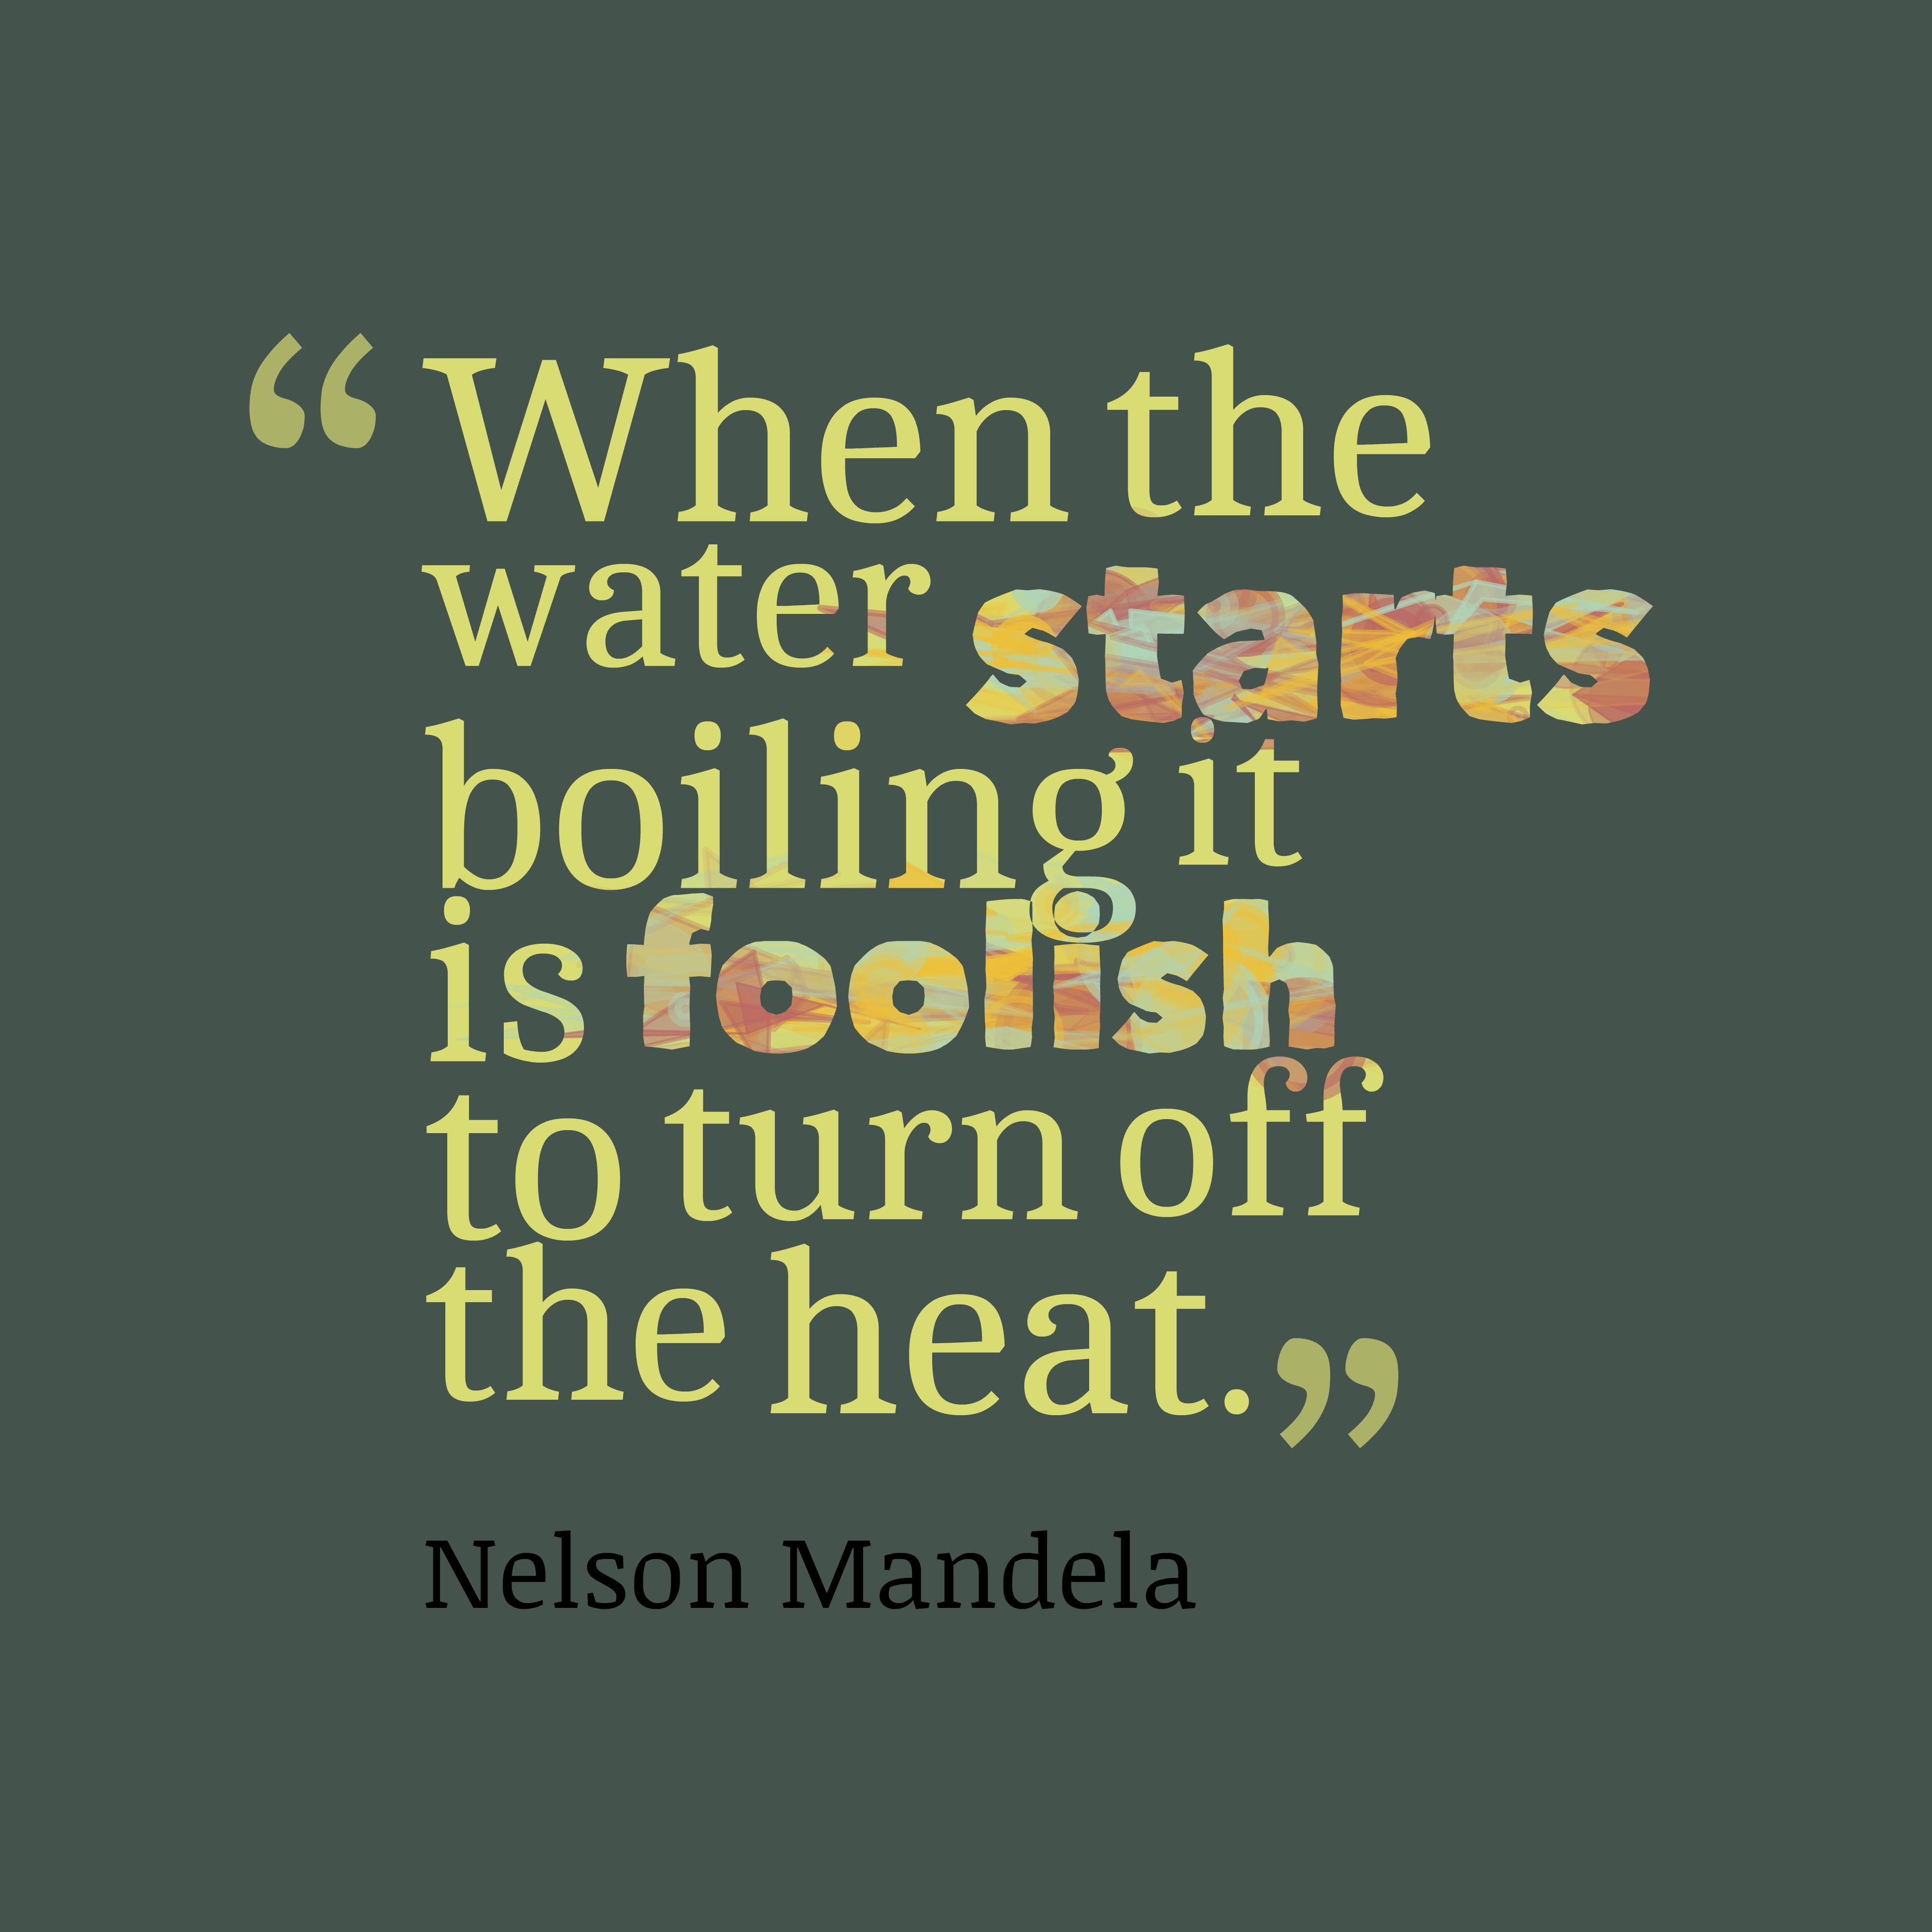 Quotes About Water: Picture » Nelson Mandela Quote About Water